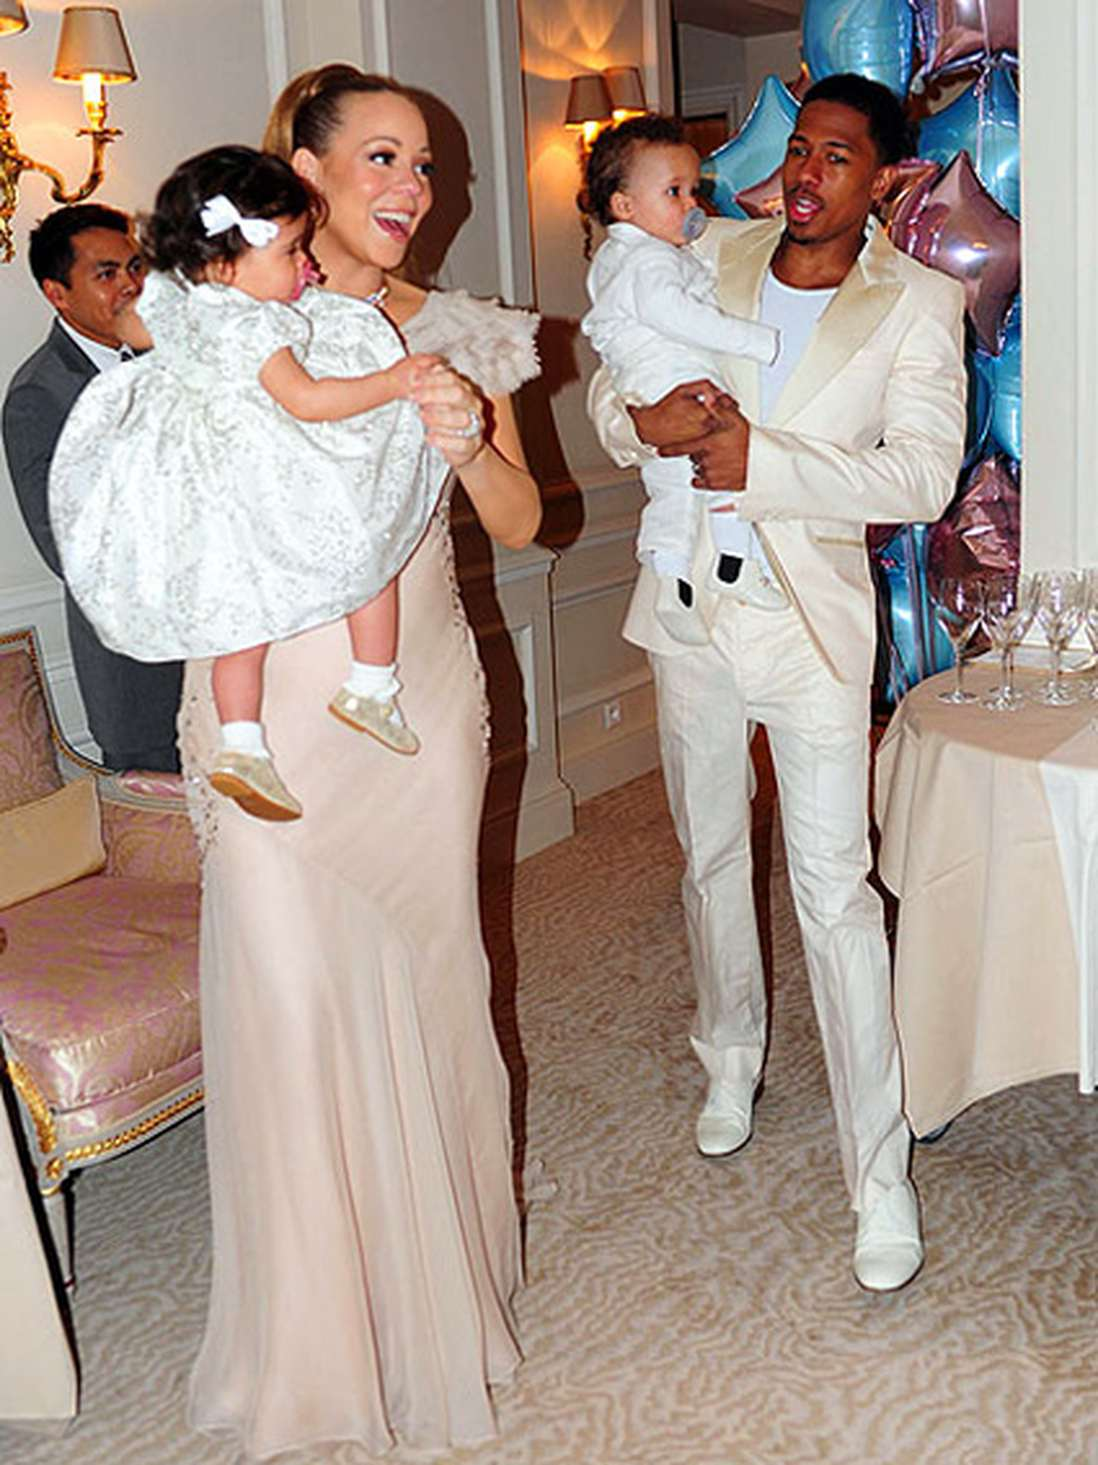 Wild 'n Out - Wikipedia Nick cannon and mariah carey twins baby pictures